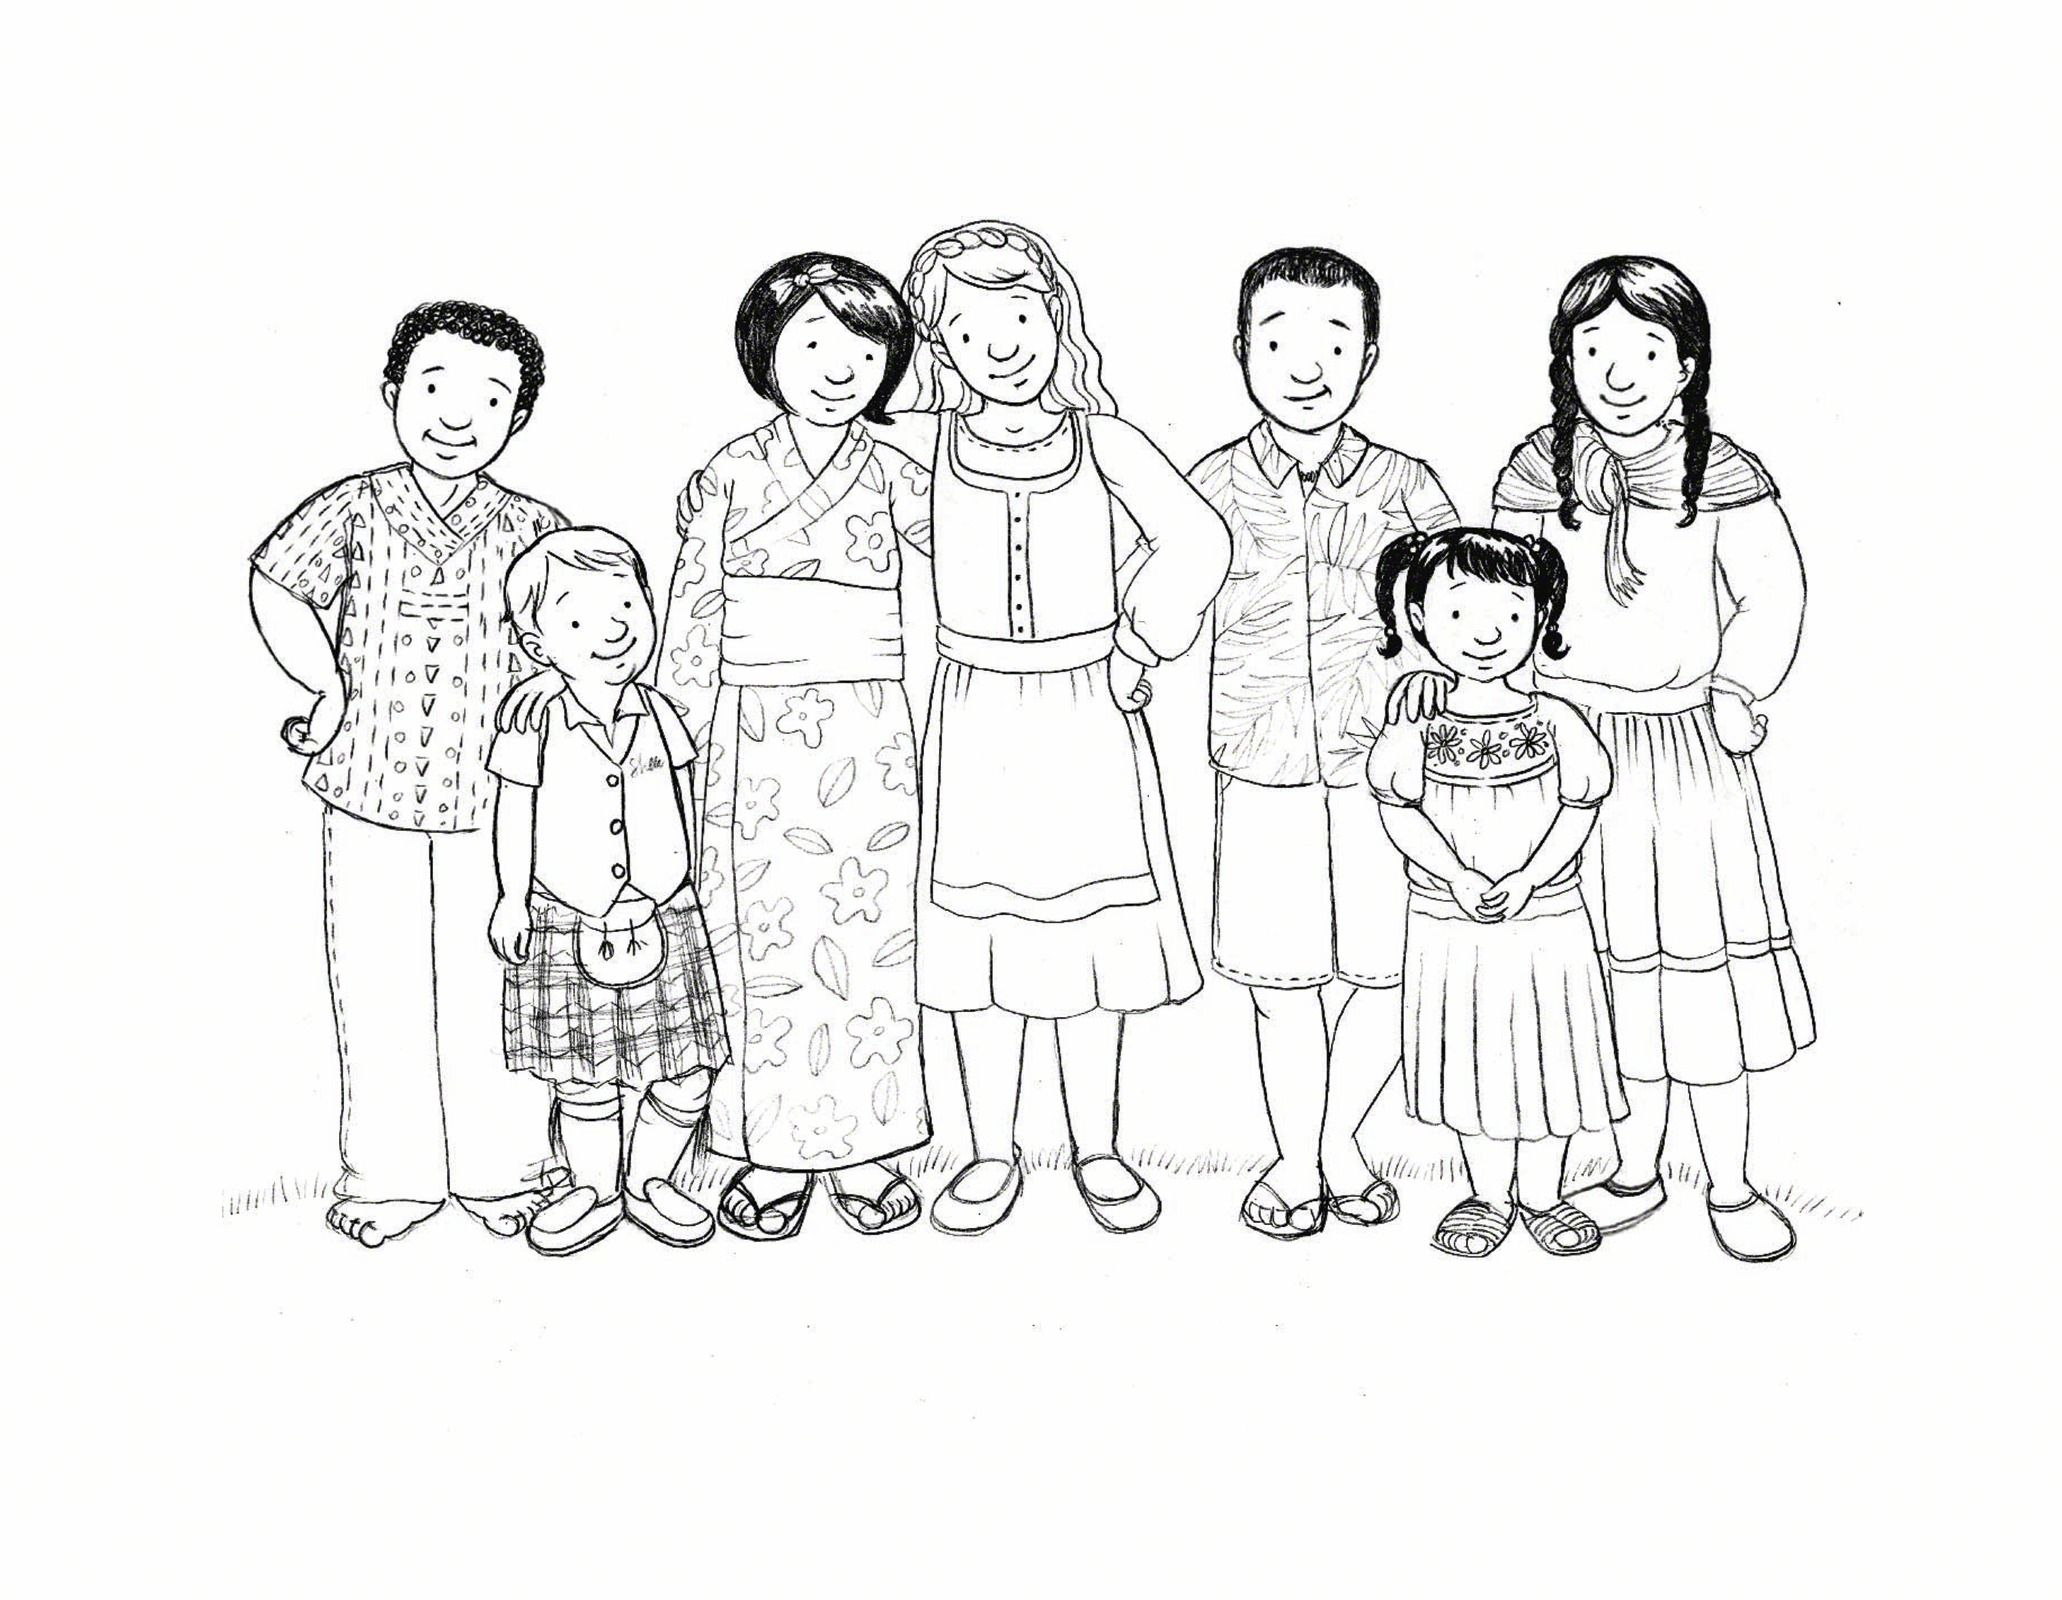 Primary Coloring Page lds mormons children kids